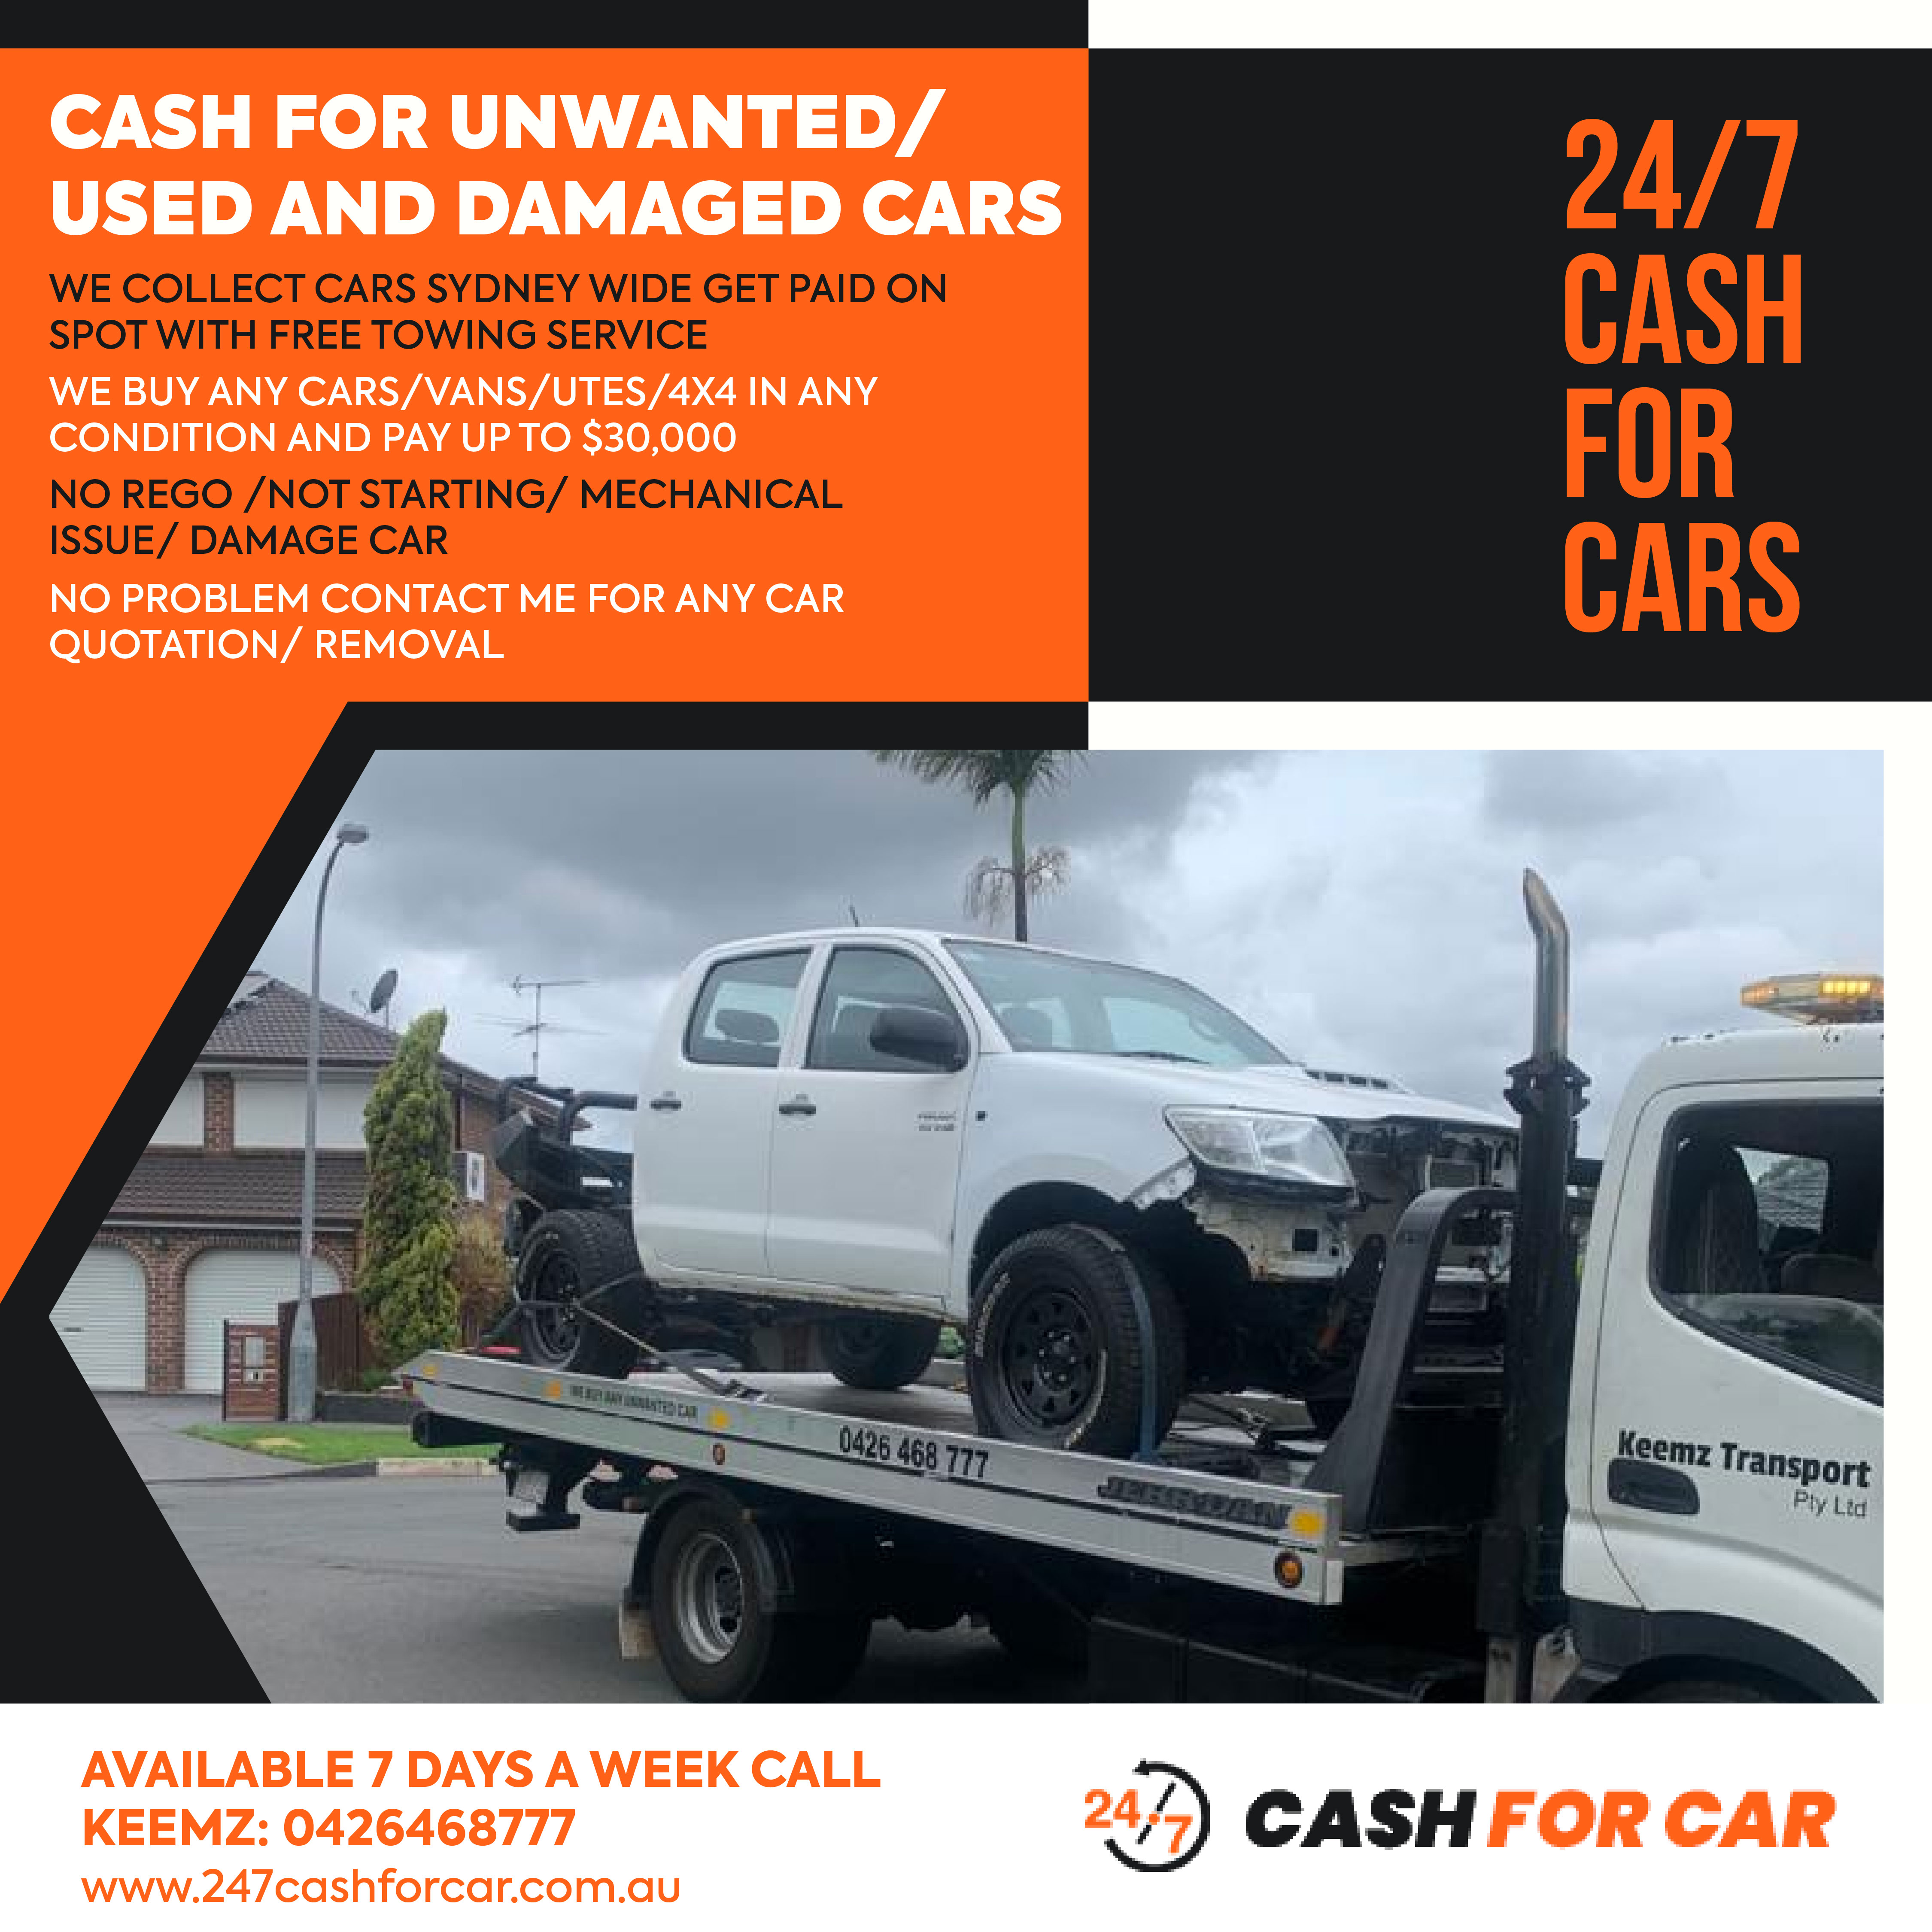 Car removal cash for cars